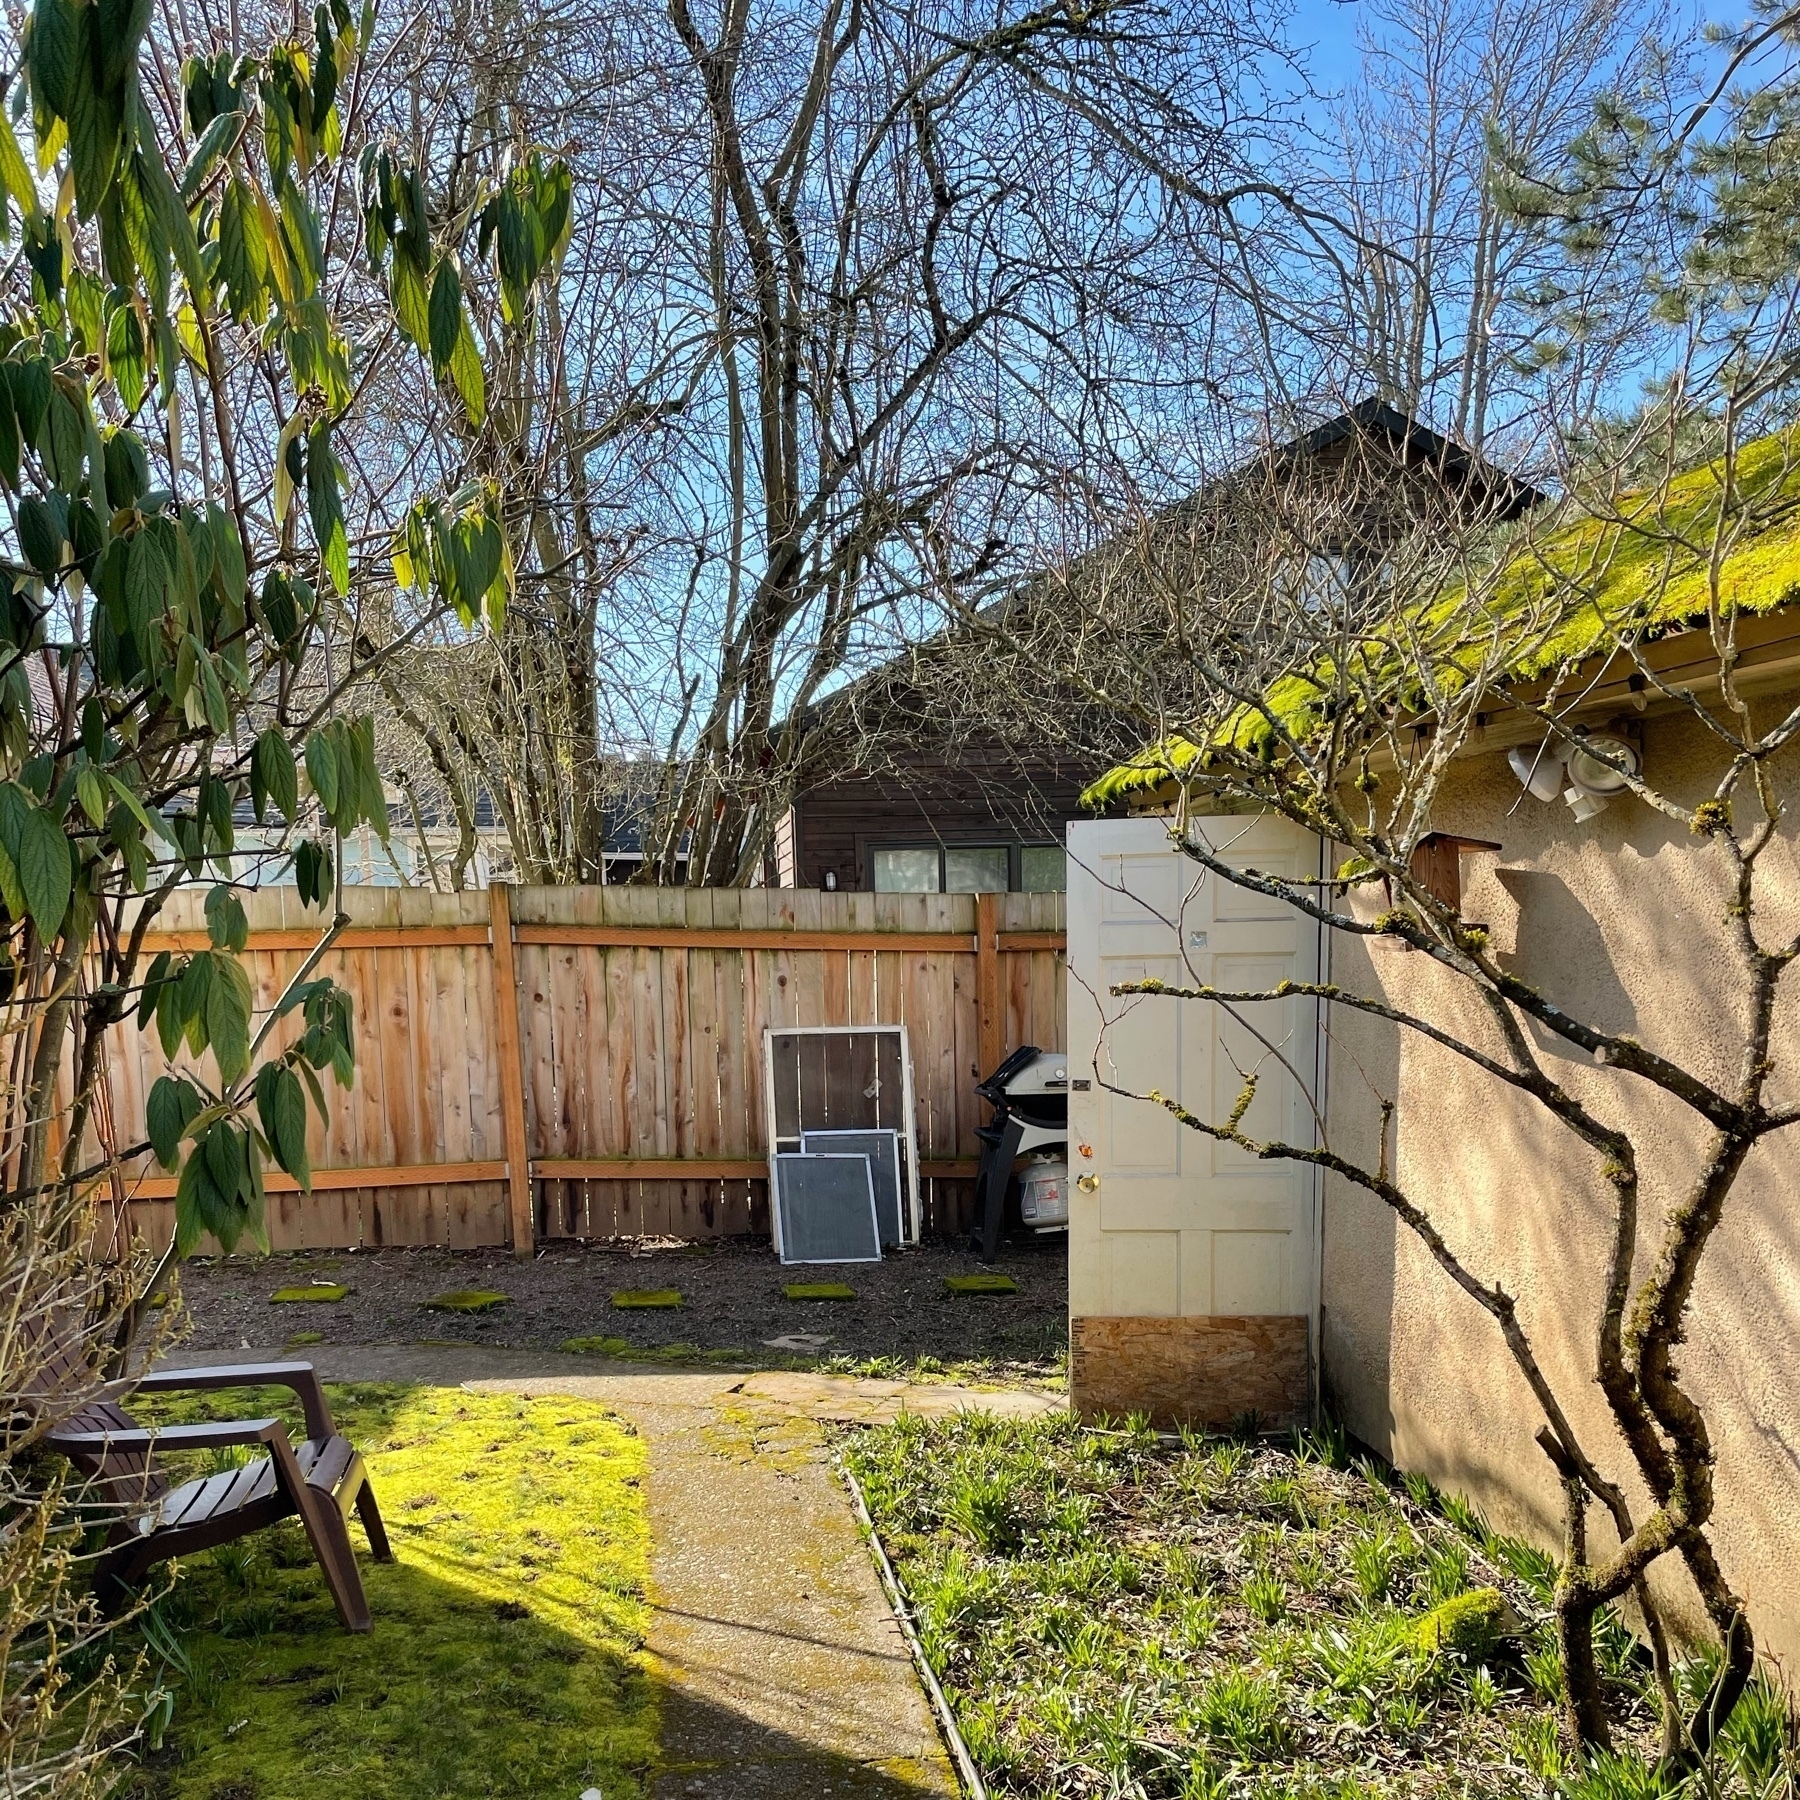 Backyard fence and garage on a sunny day